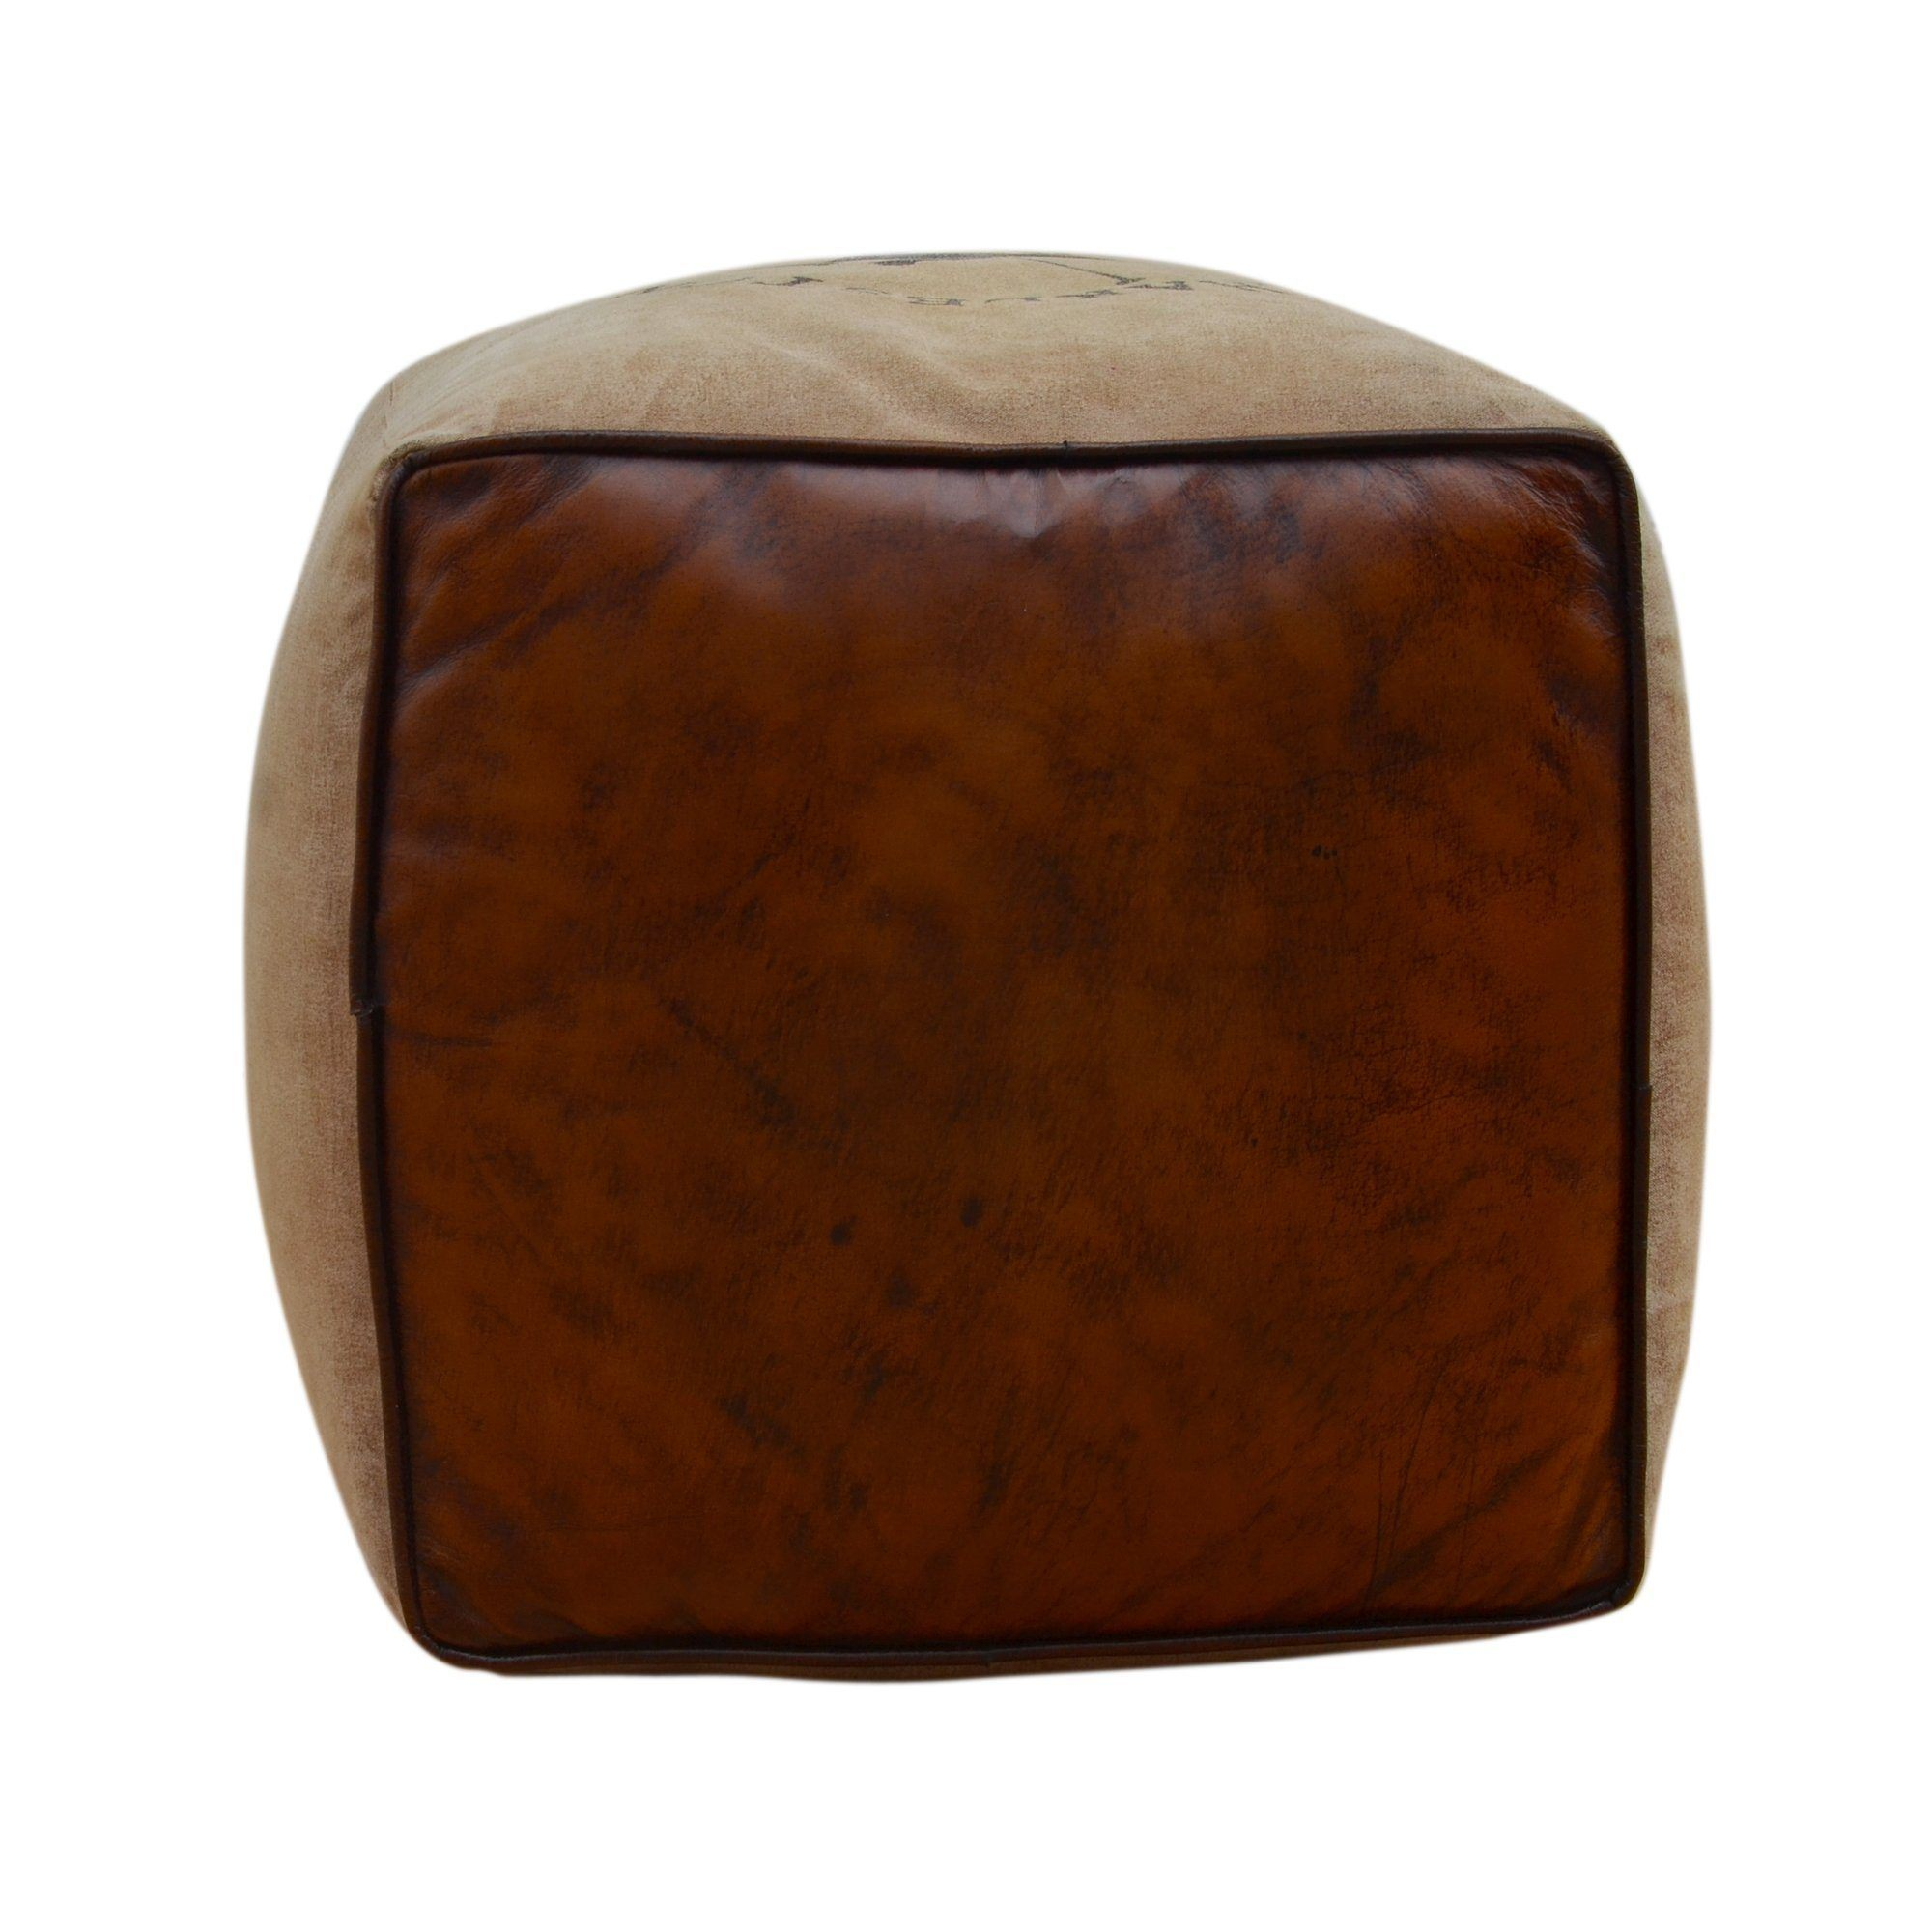 tray fuzzy pouf footstool bench fur table large home ottomans gray small storage an white square target moroccan coffee leather casual ottoman furniture ans cube goods